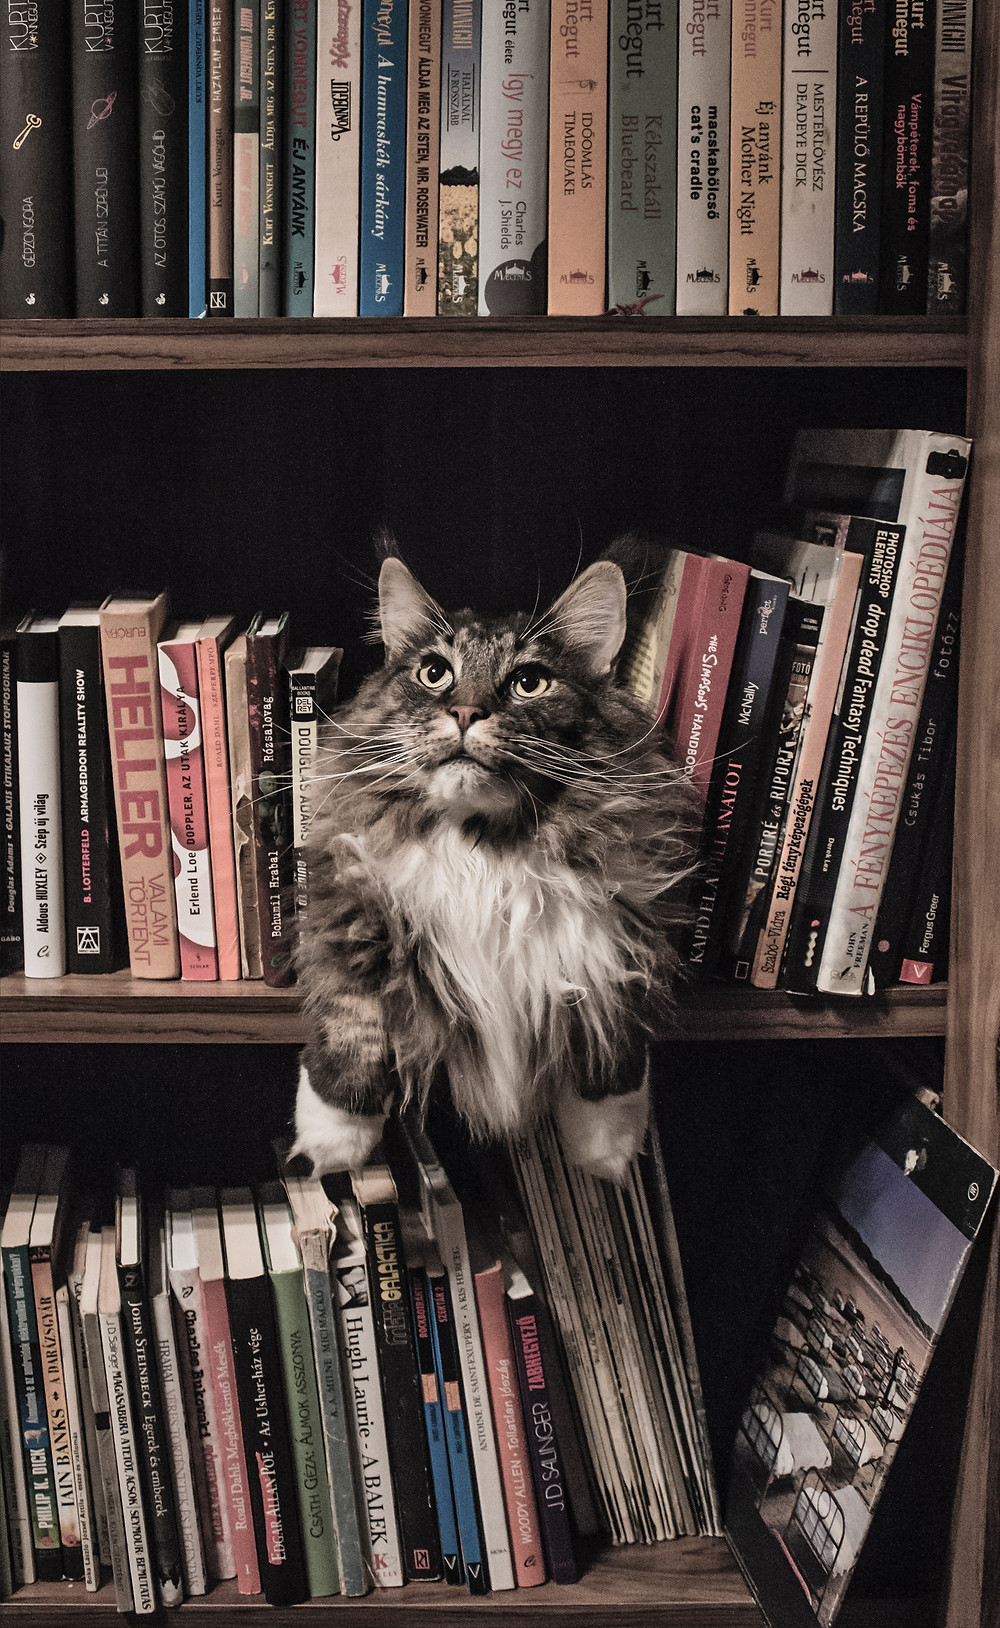 Cat sitting in the middle of a book shelf